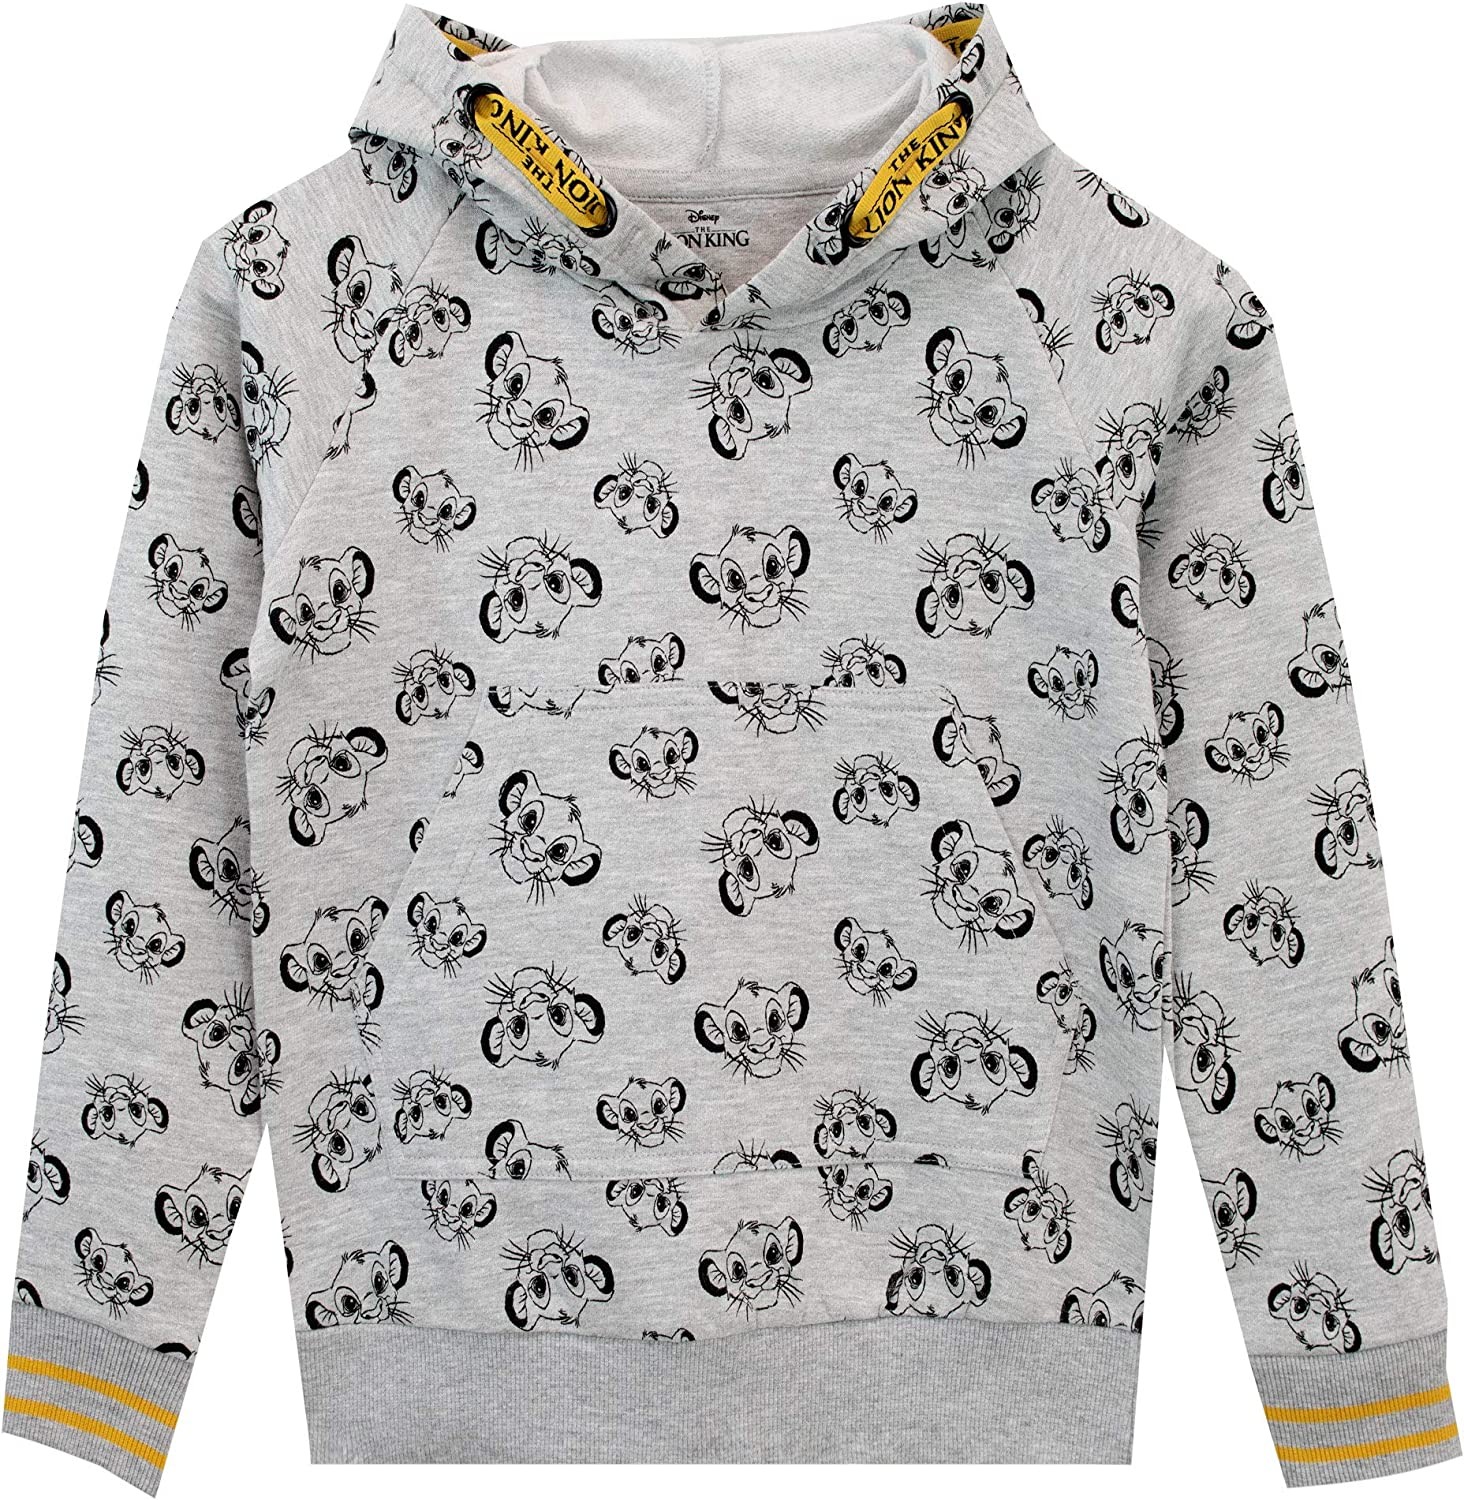 Disney Boys Lion King Hoodie